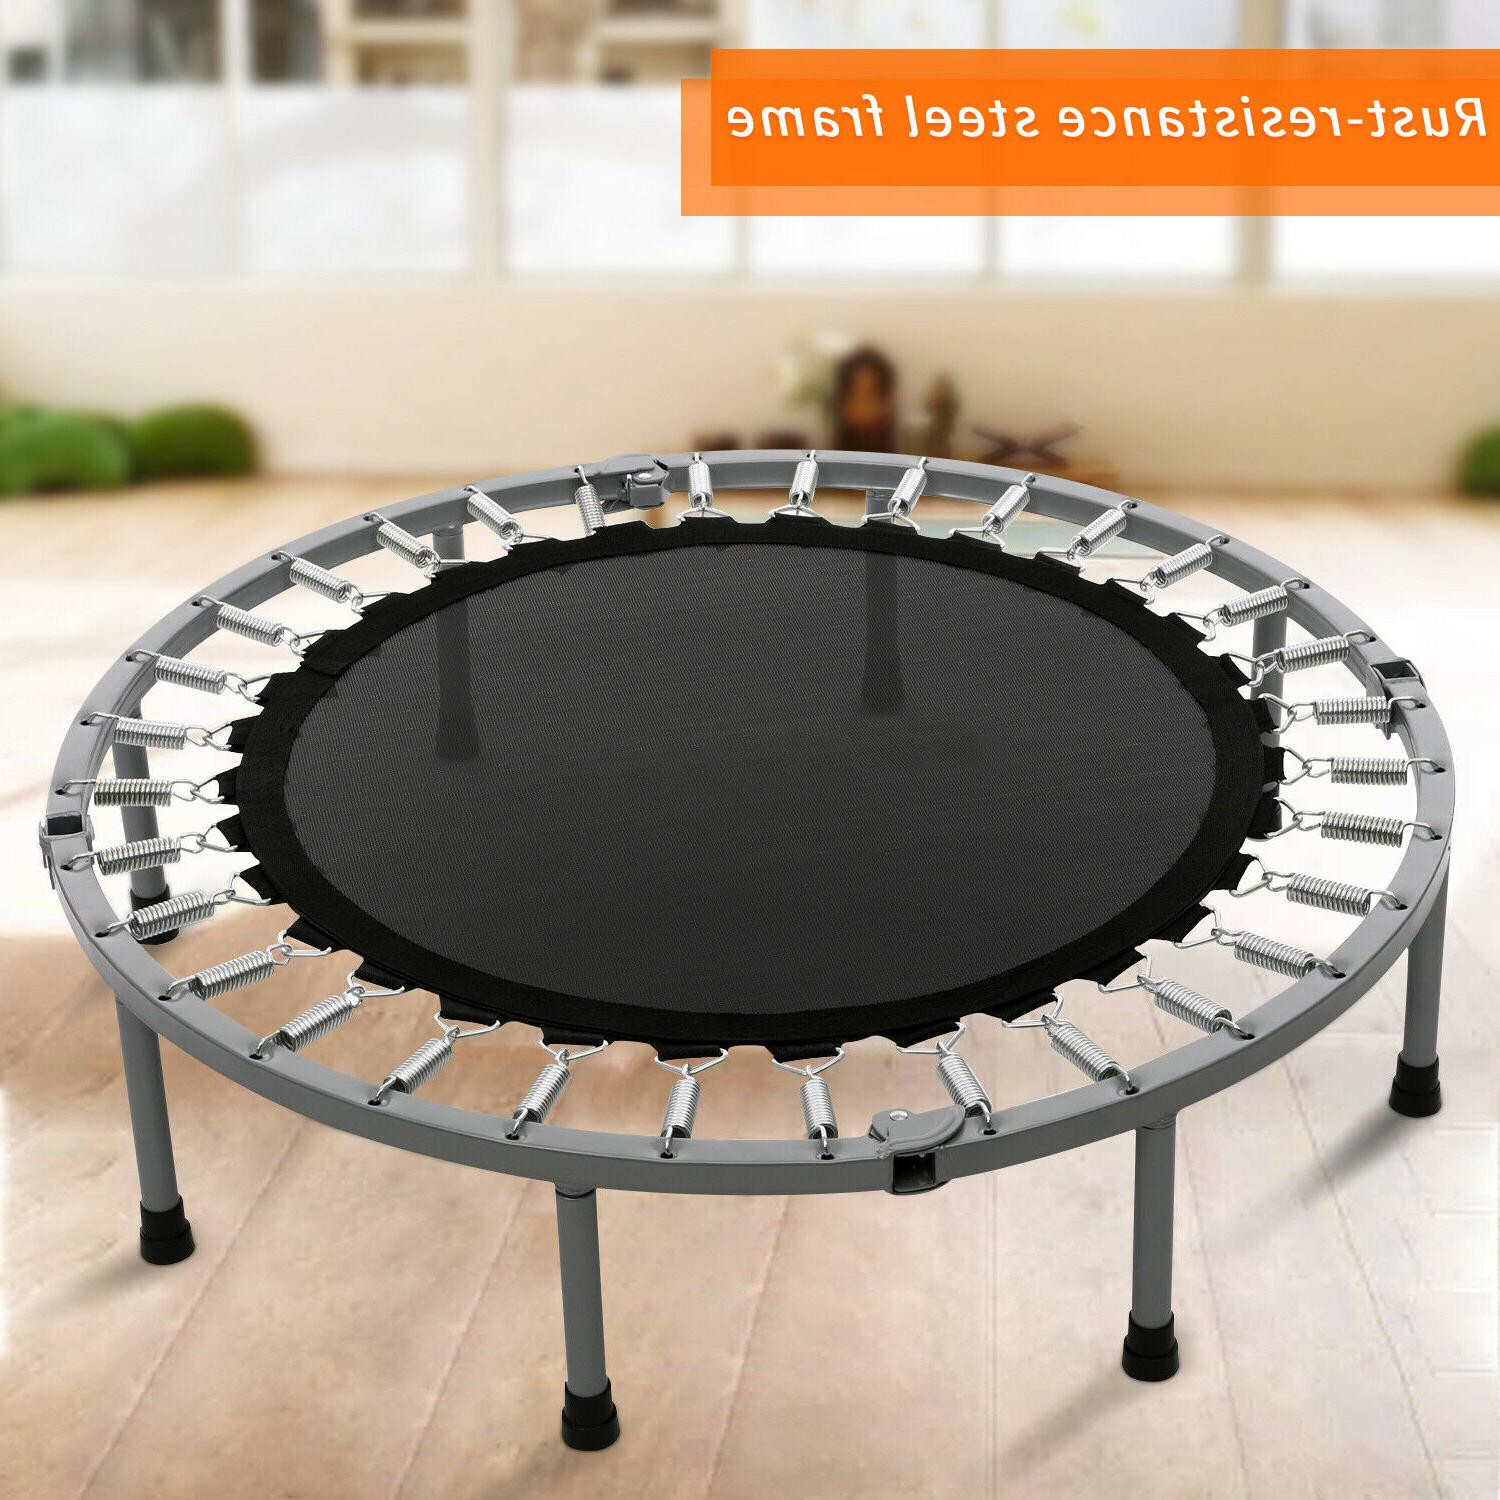 ANCHEER Adults Kids Load Rebounder Training